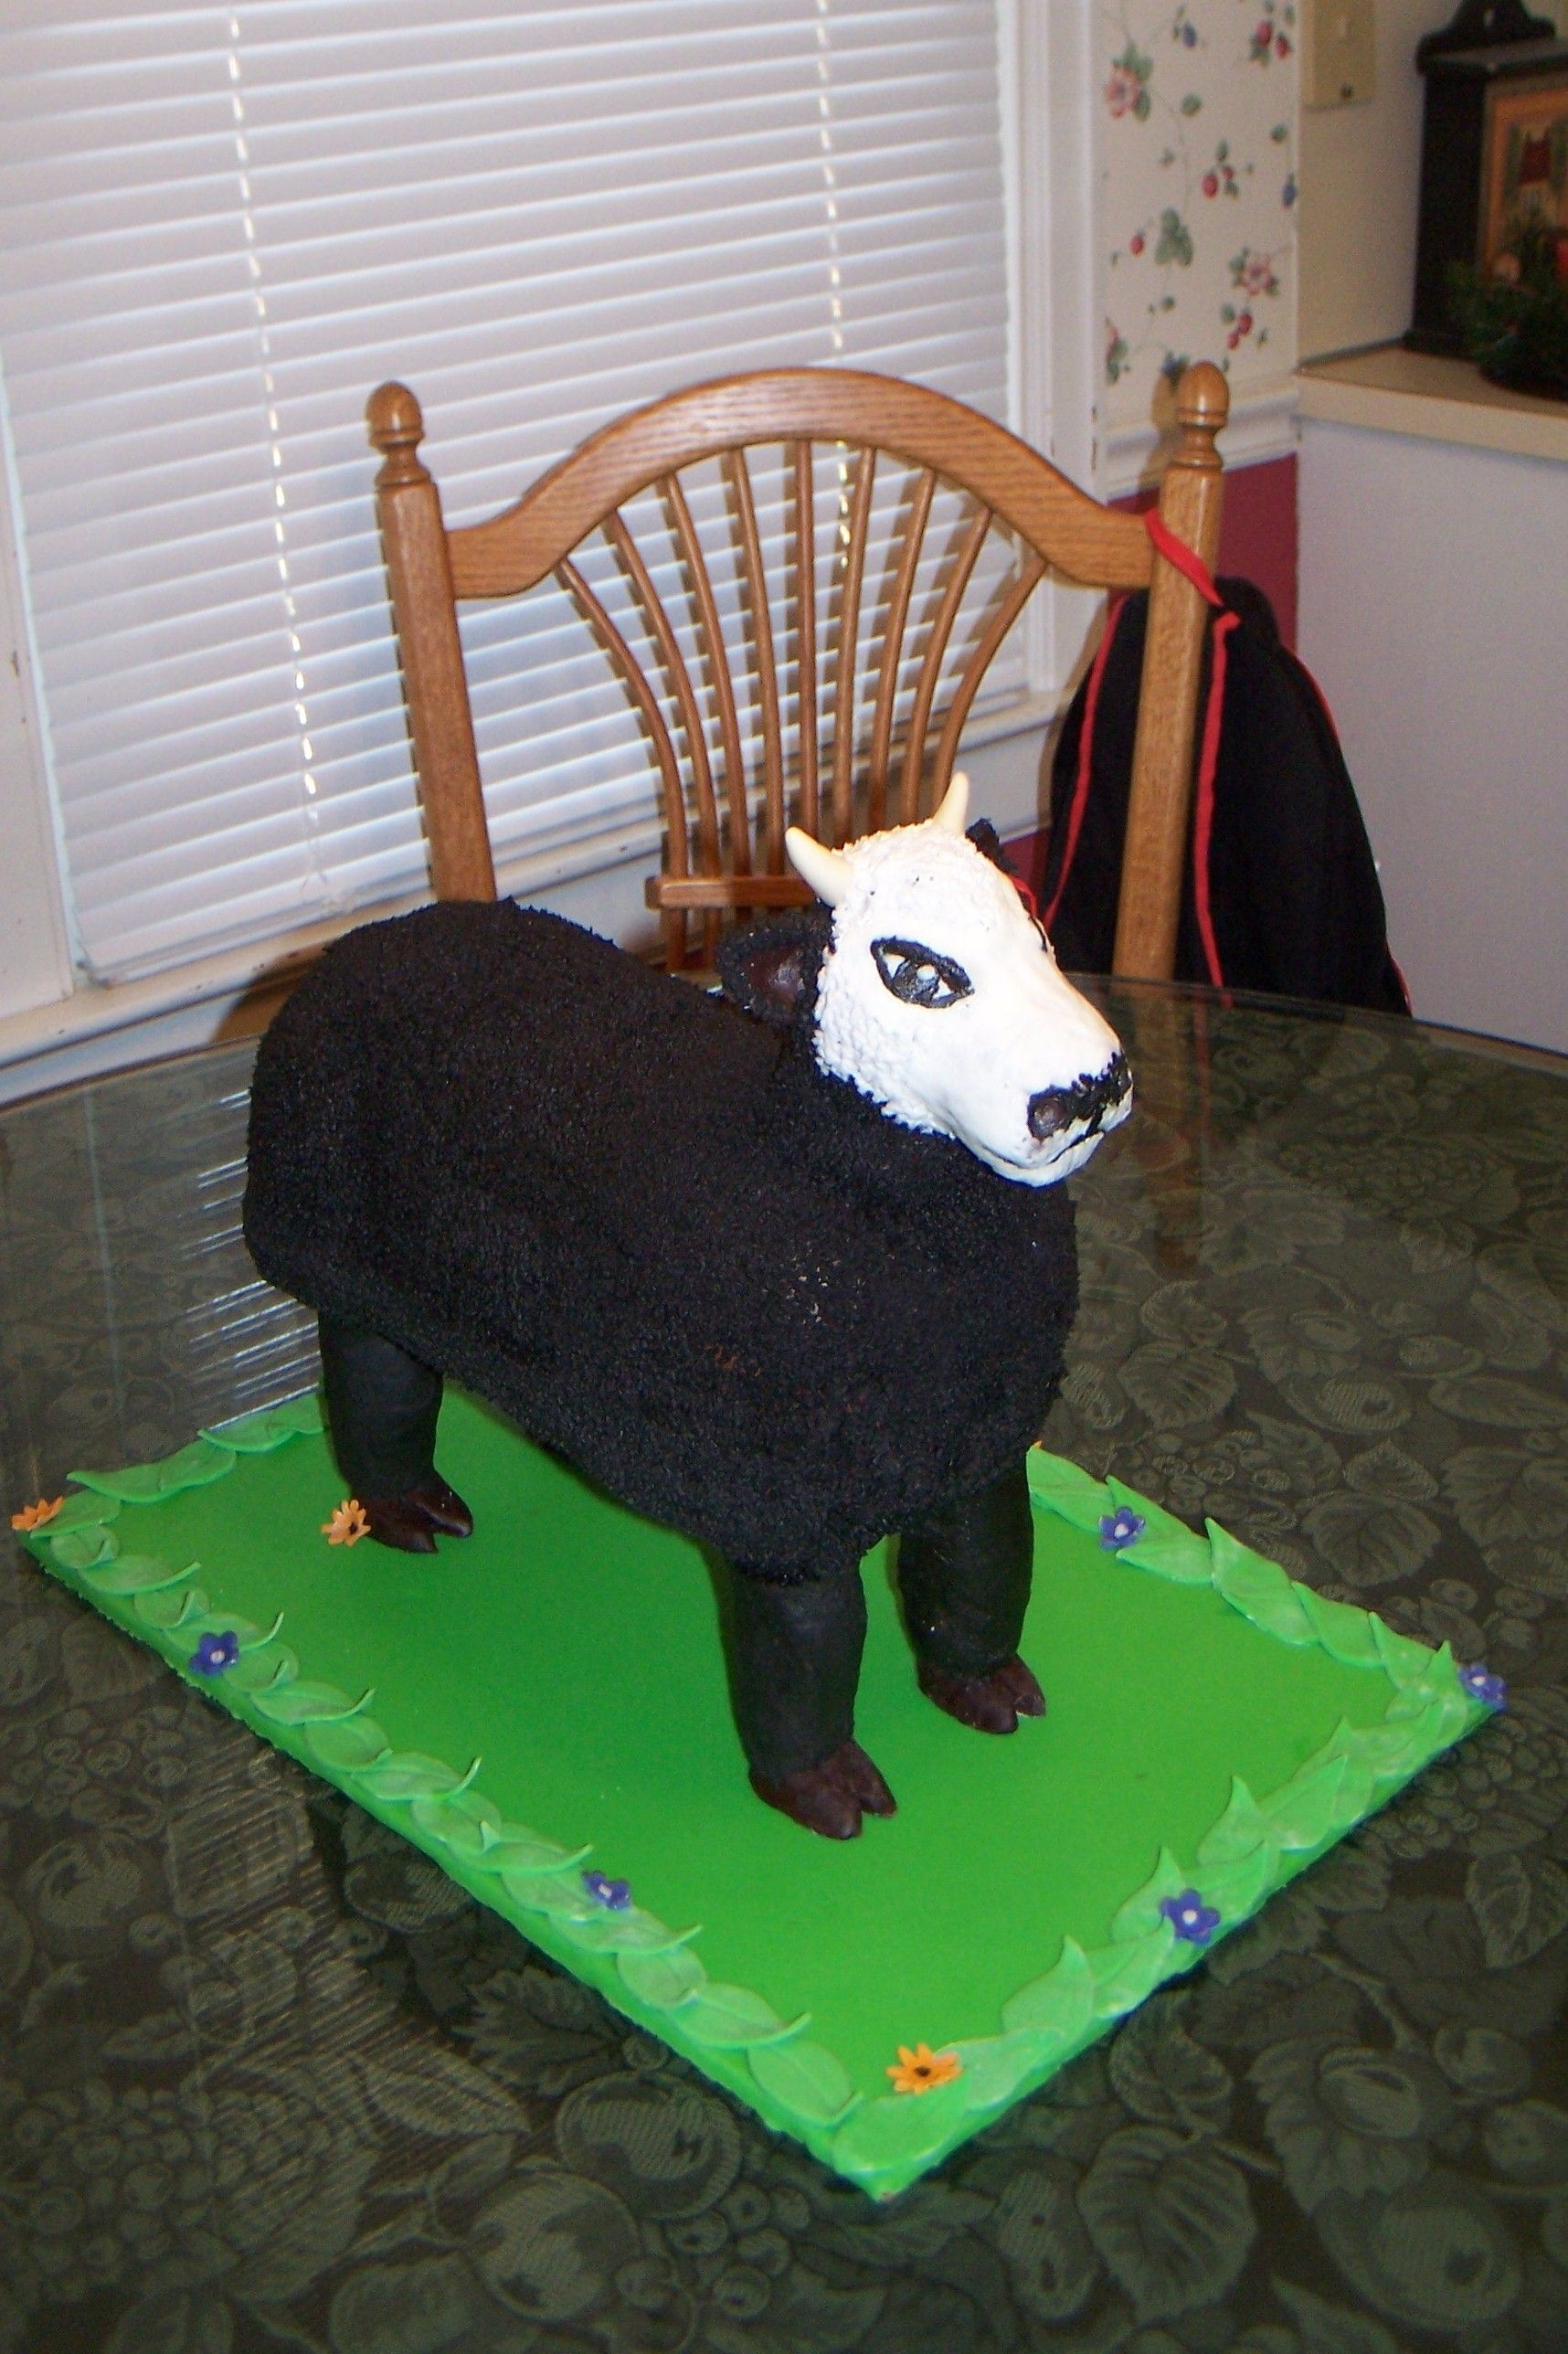 Cow Cake Cow cake for boy turning 5. He has a bull named 102 that he wanted his cake to look like. This is what I came up with!